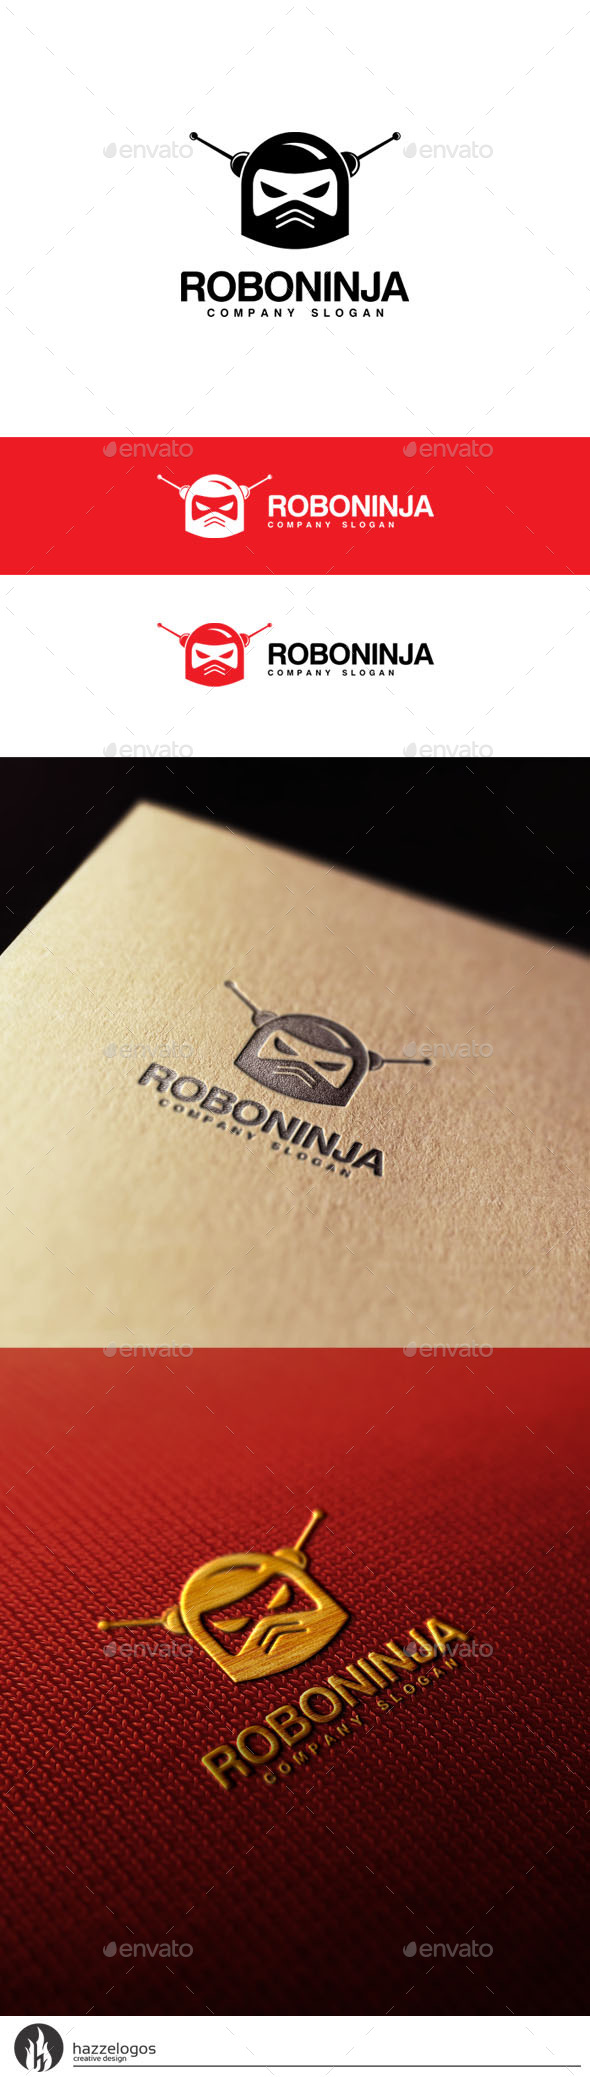 Roboninja Logo - Objects Logo Templates